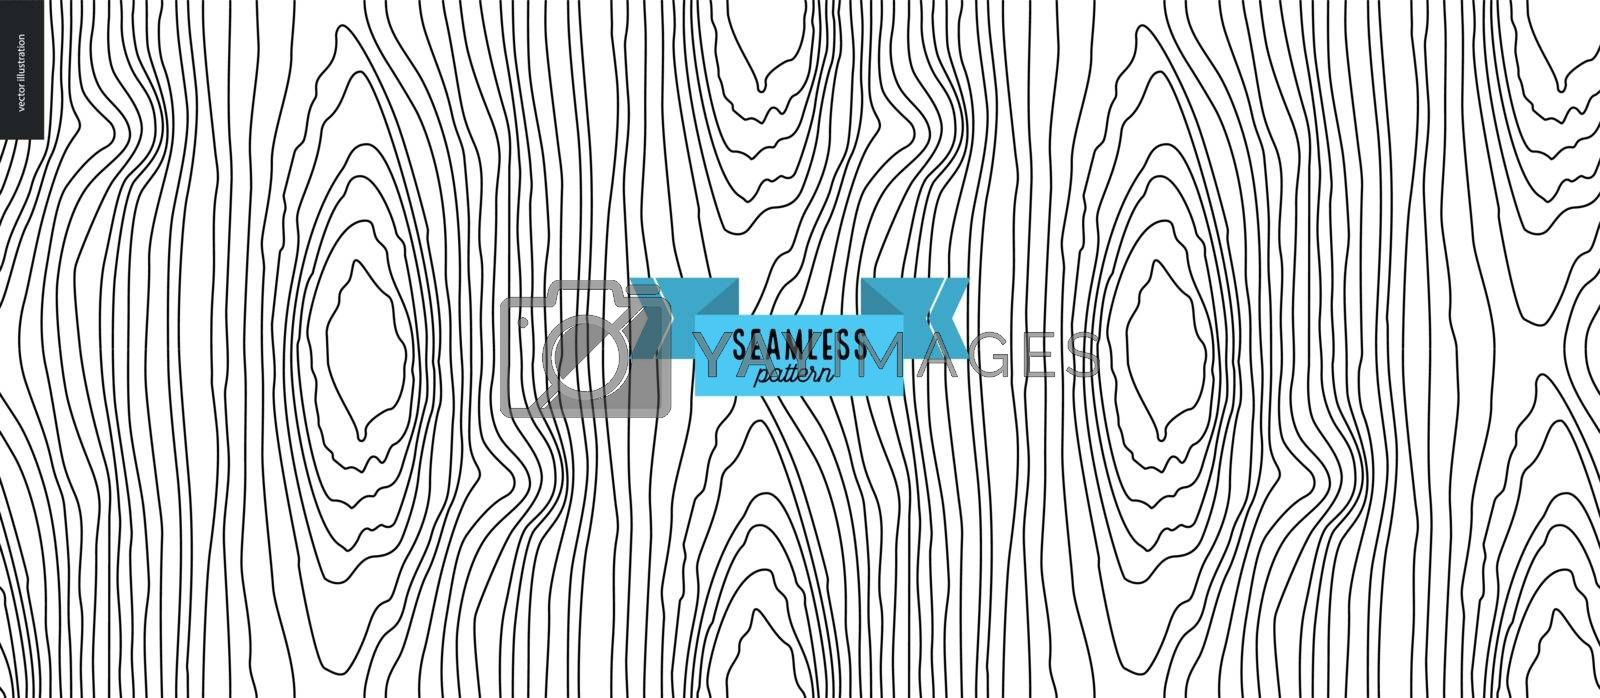 Seamless black and white hand drawn wood pattern by grivina